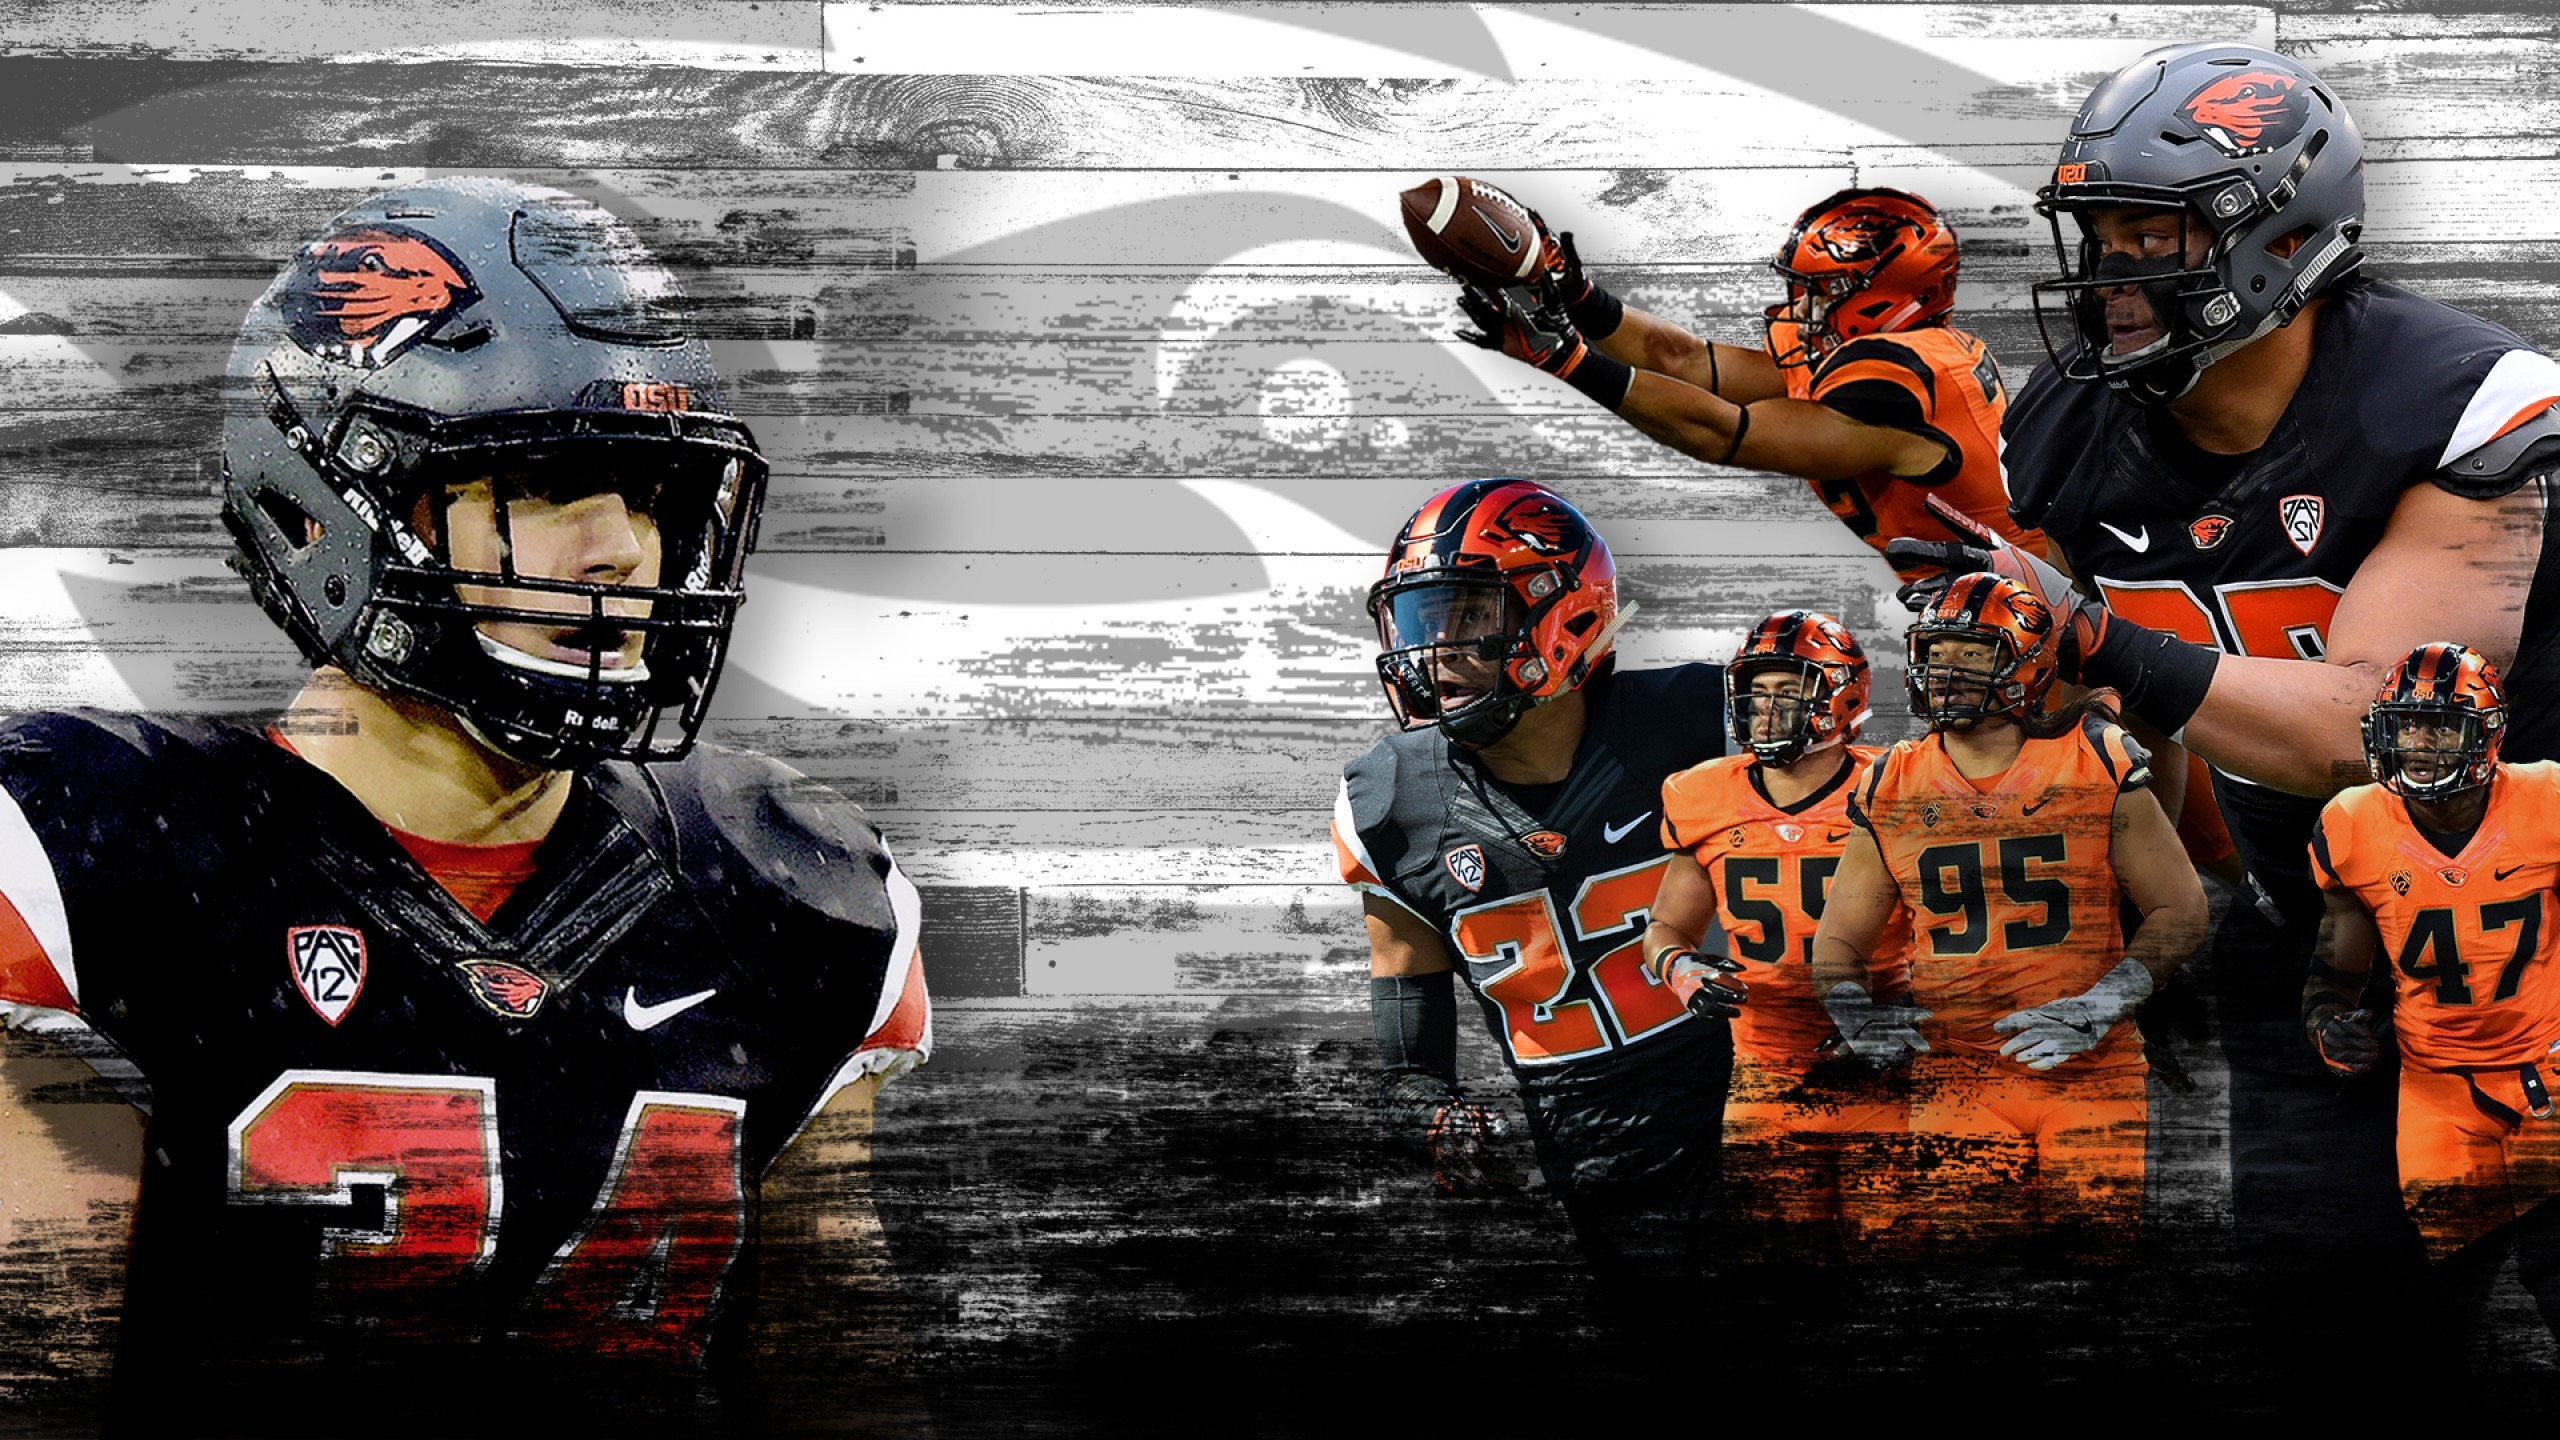 2560x1440 Uniforms american football cool wallpaper jpg  Uniforms american  football cool wallpaper of